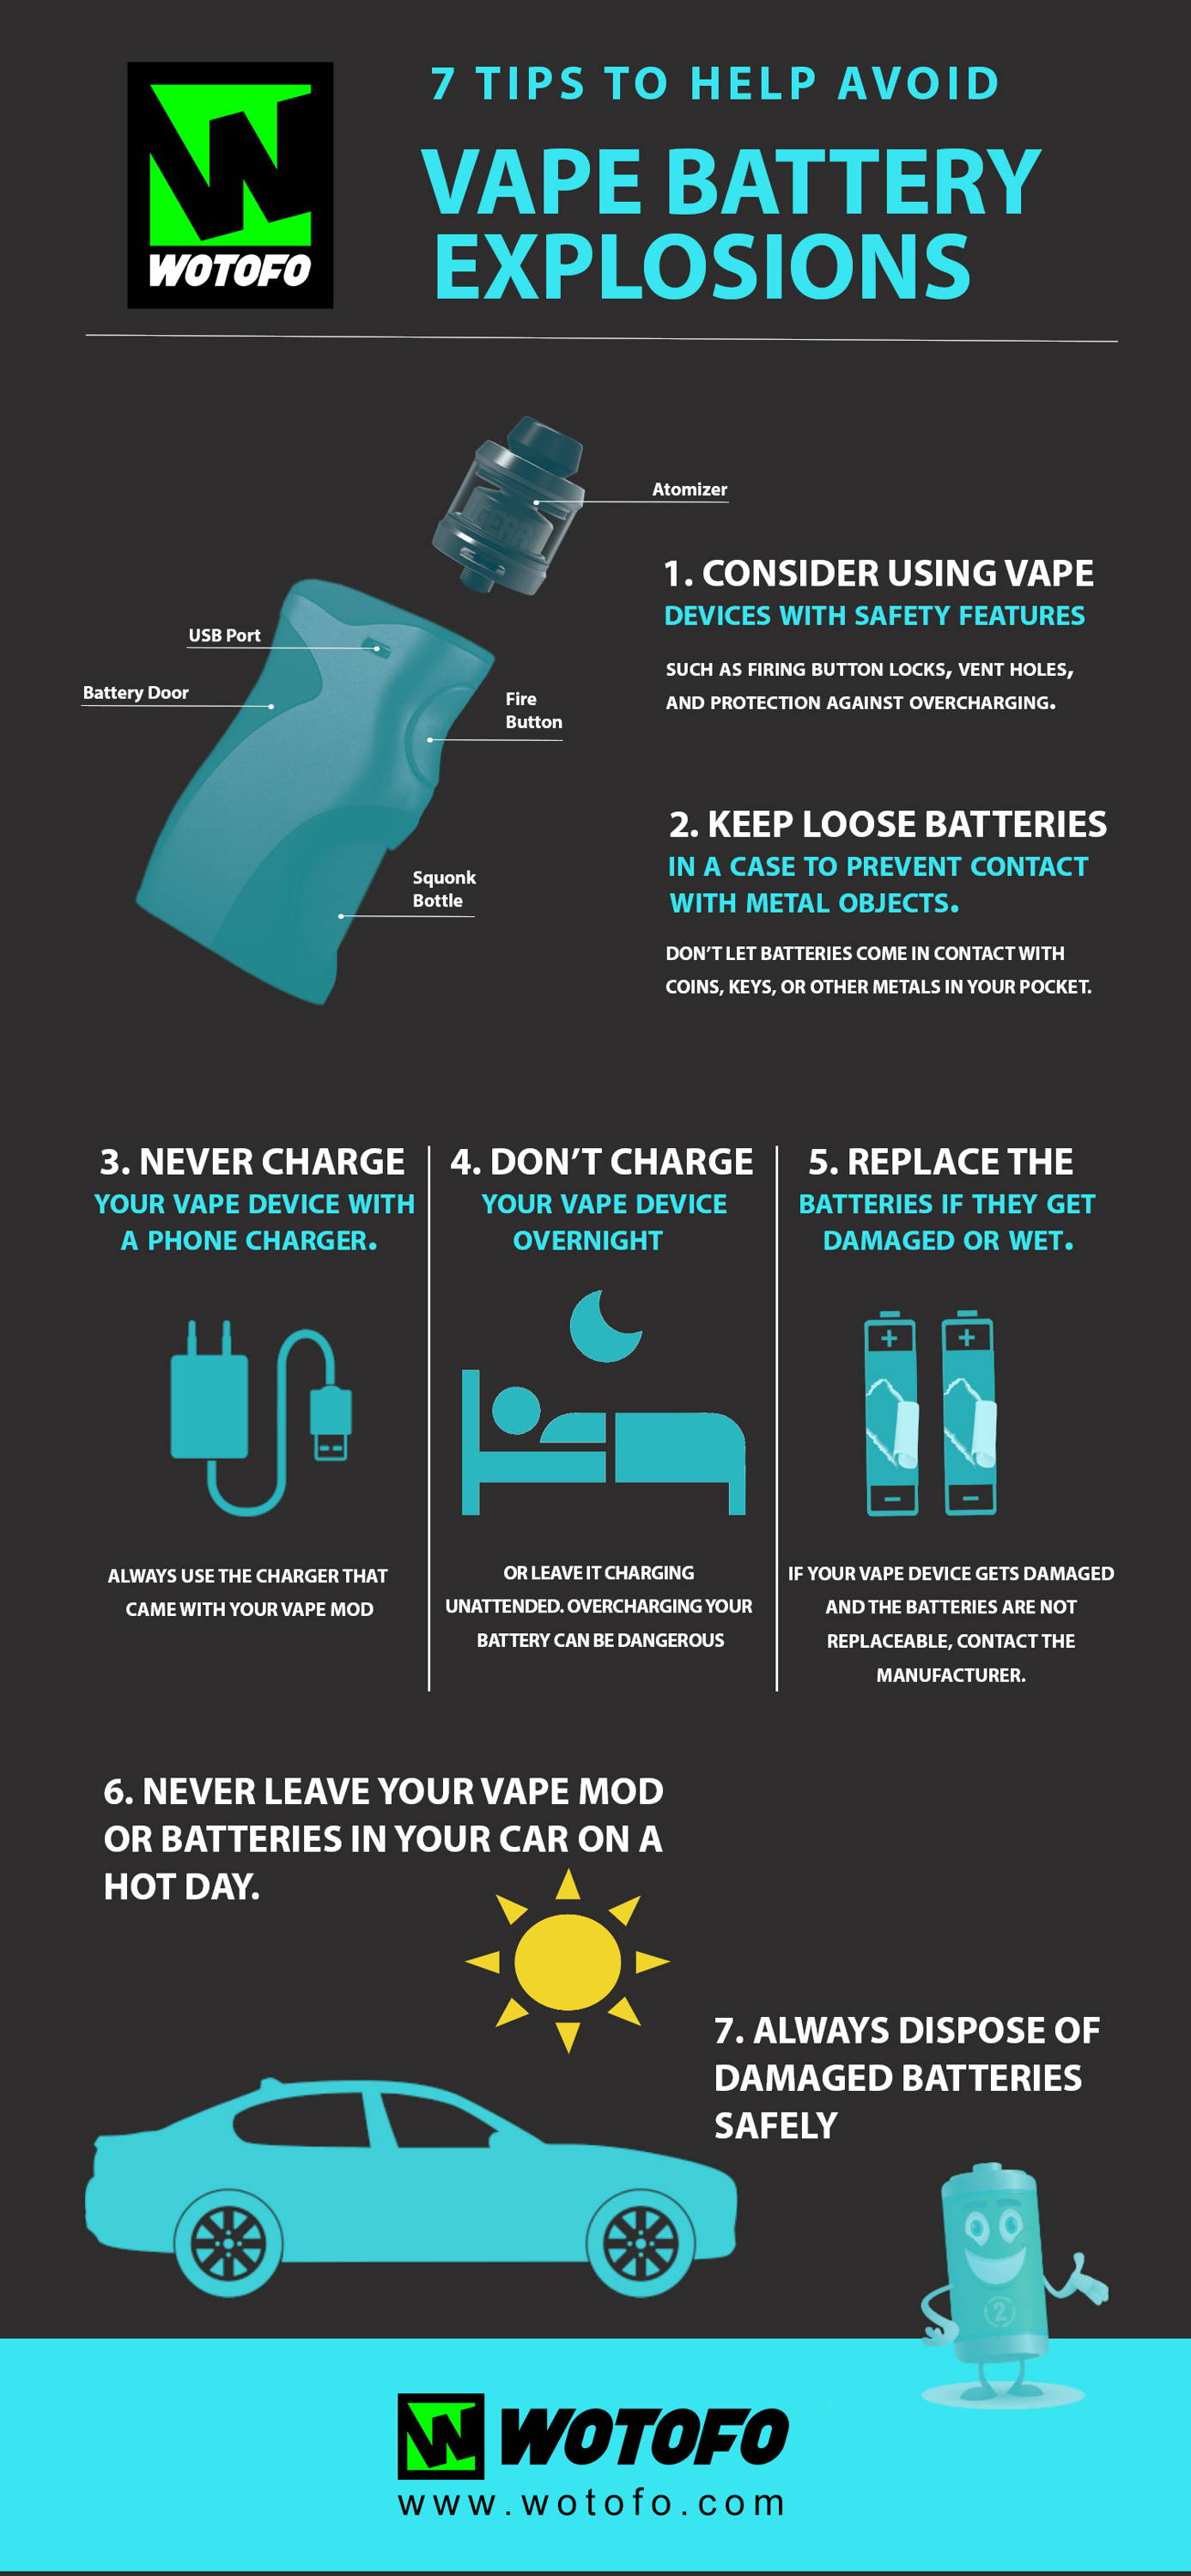 7 Tips To Avoid Vape Battery Explosions